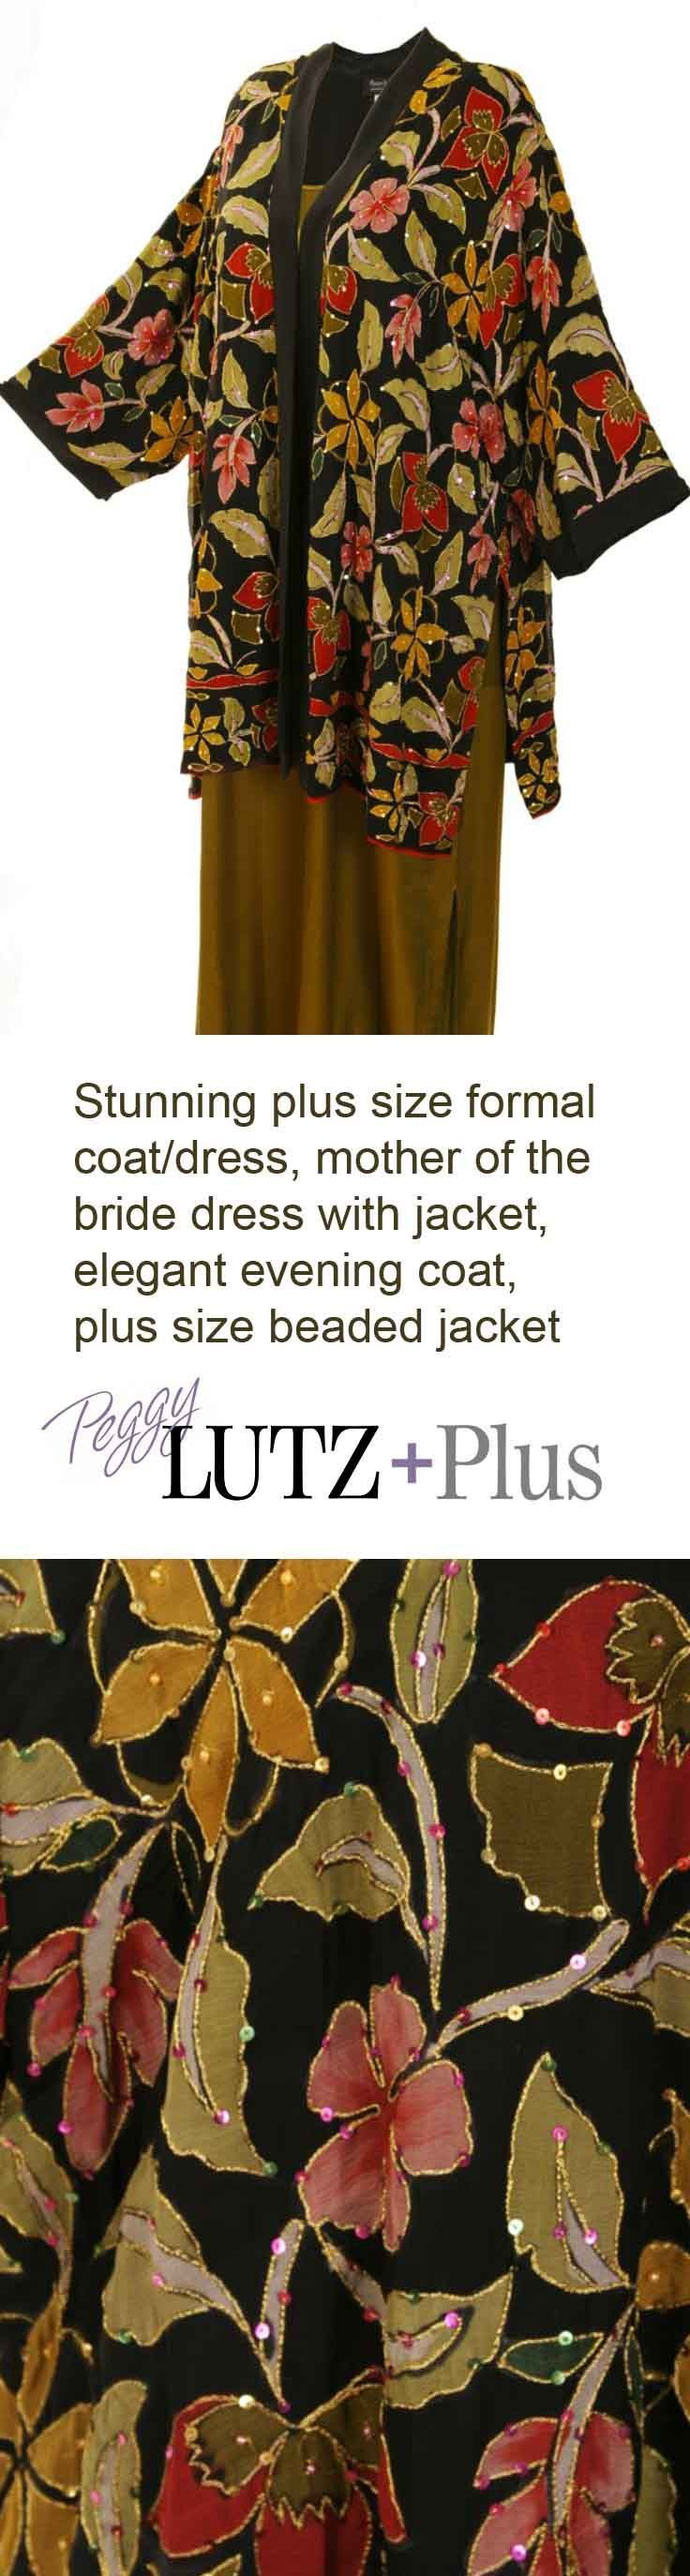 Plus Size Lined Tunic Length Kimono Jacket Naturals/Black Handpainted Beaded Floral Silk Georgette  Gorgeous plus size formal jacket is so easy to wear and feel like yourself in!  Wear it with jeans or dressy, dressy, xoPEG